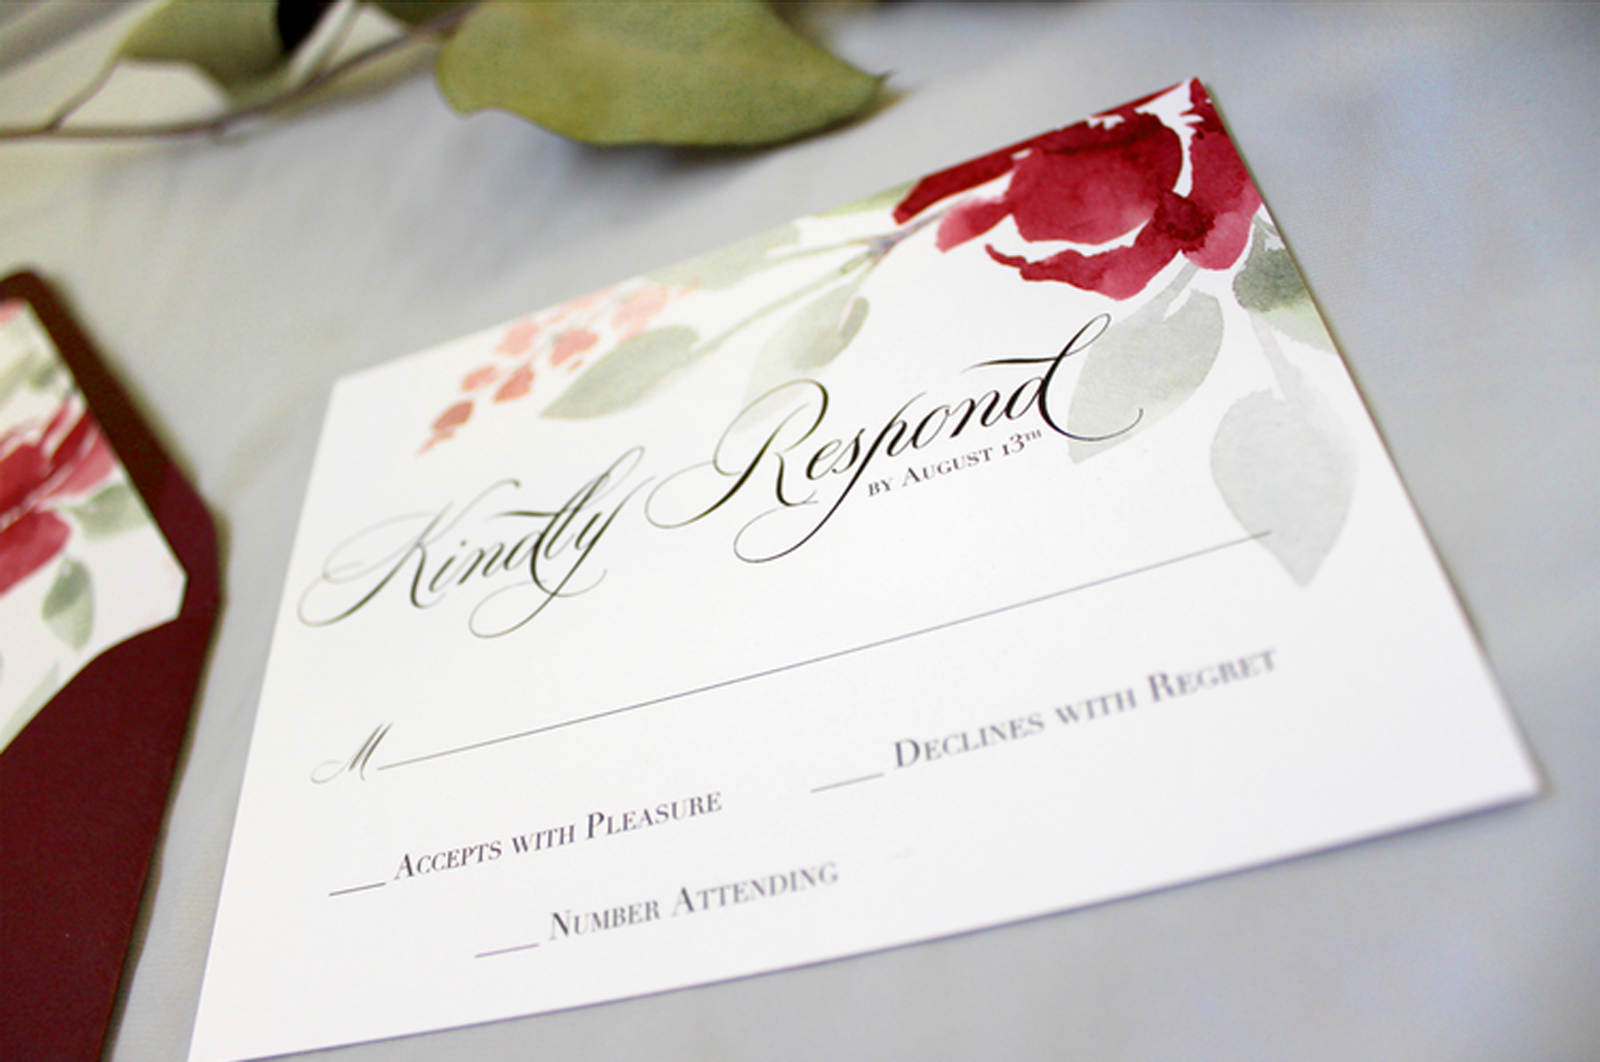 Watercolor response card for a grosse pointe war memorial wedding | Blushed Design, Wedding Invitations and Fine Art Portraits